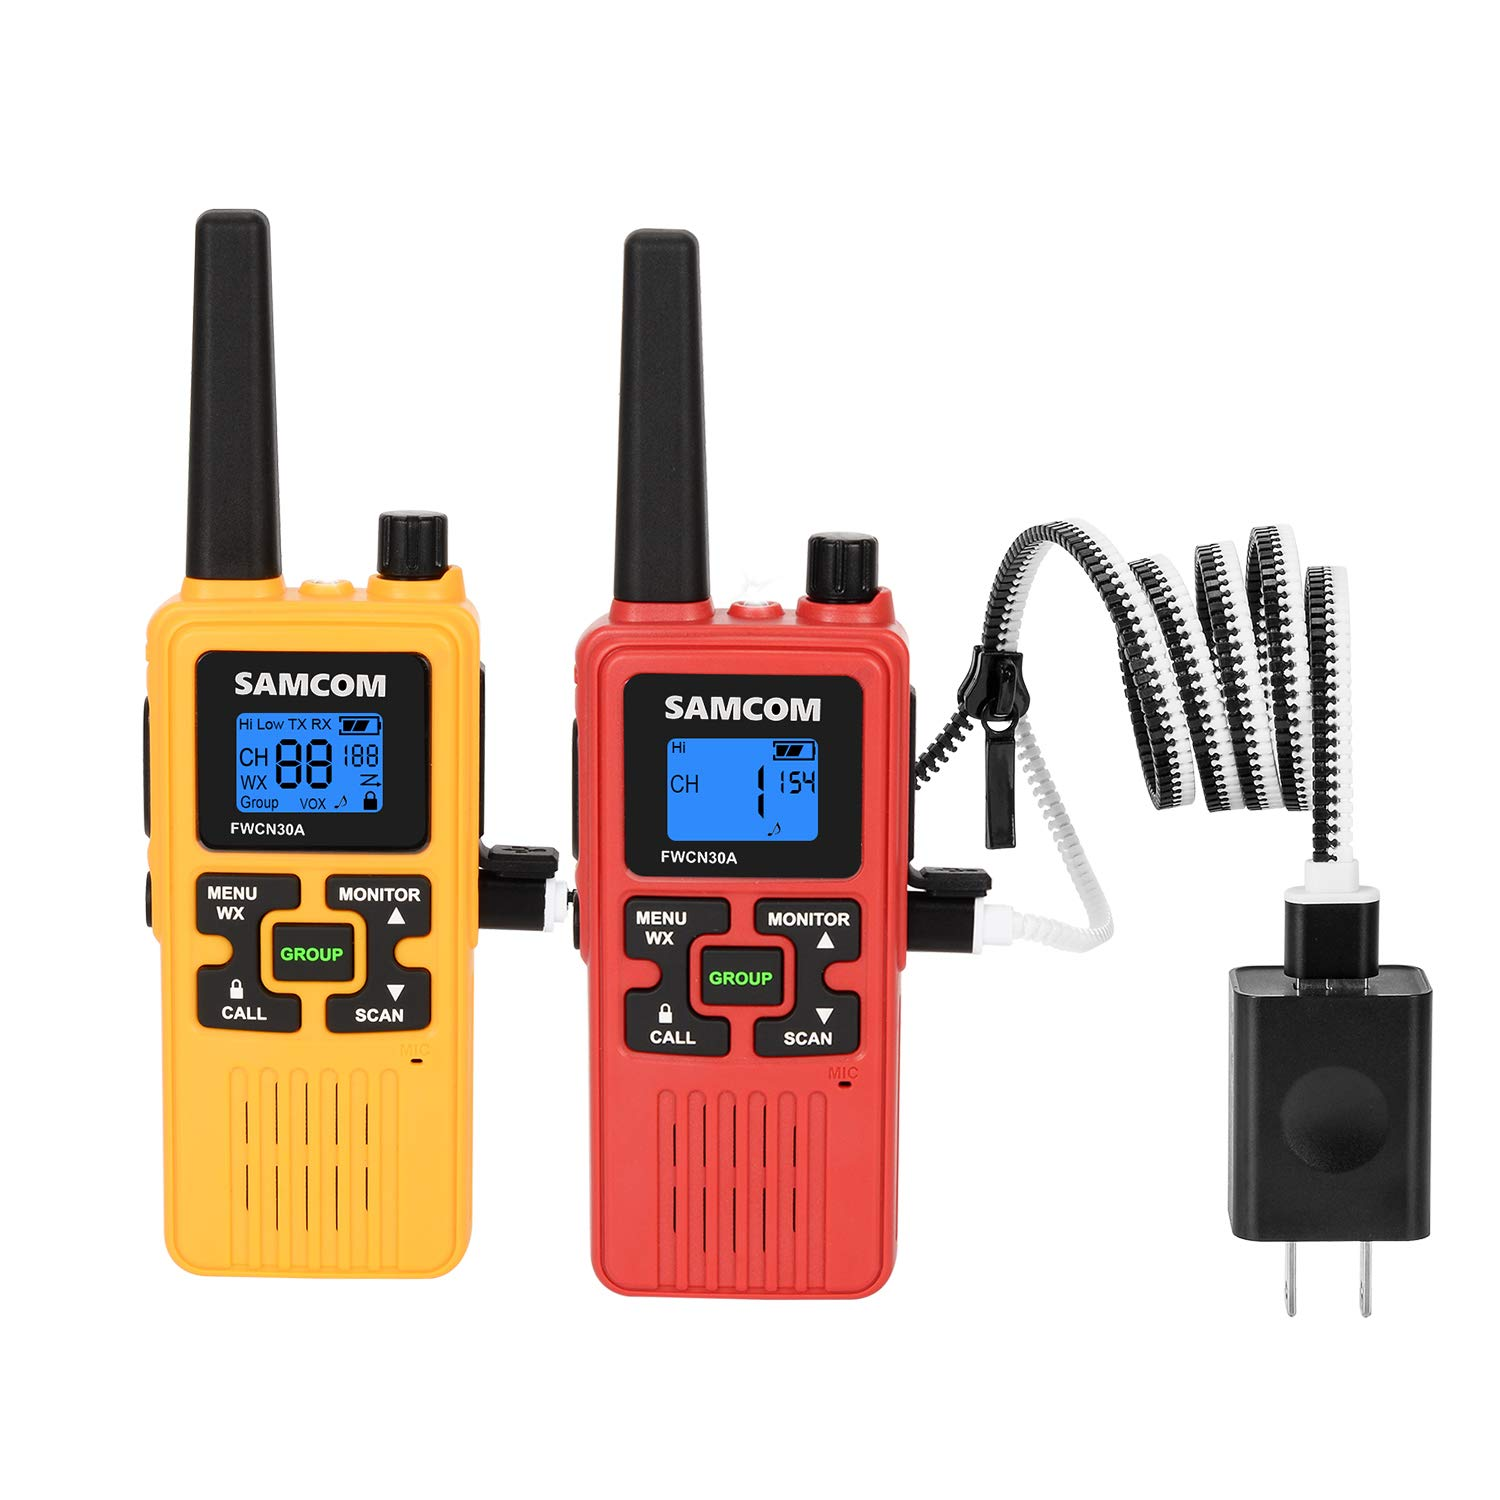 FRS Two Way Radio 22CH with 1250mAh Rechargeable Battery LCD Display LED Flashlight, License Free Walkie Talkies 36 Miles Long Range with Group VOX SCAN NOAA Call Alert Function (Yellow+Red) by SAMCOM